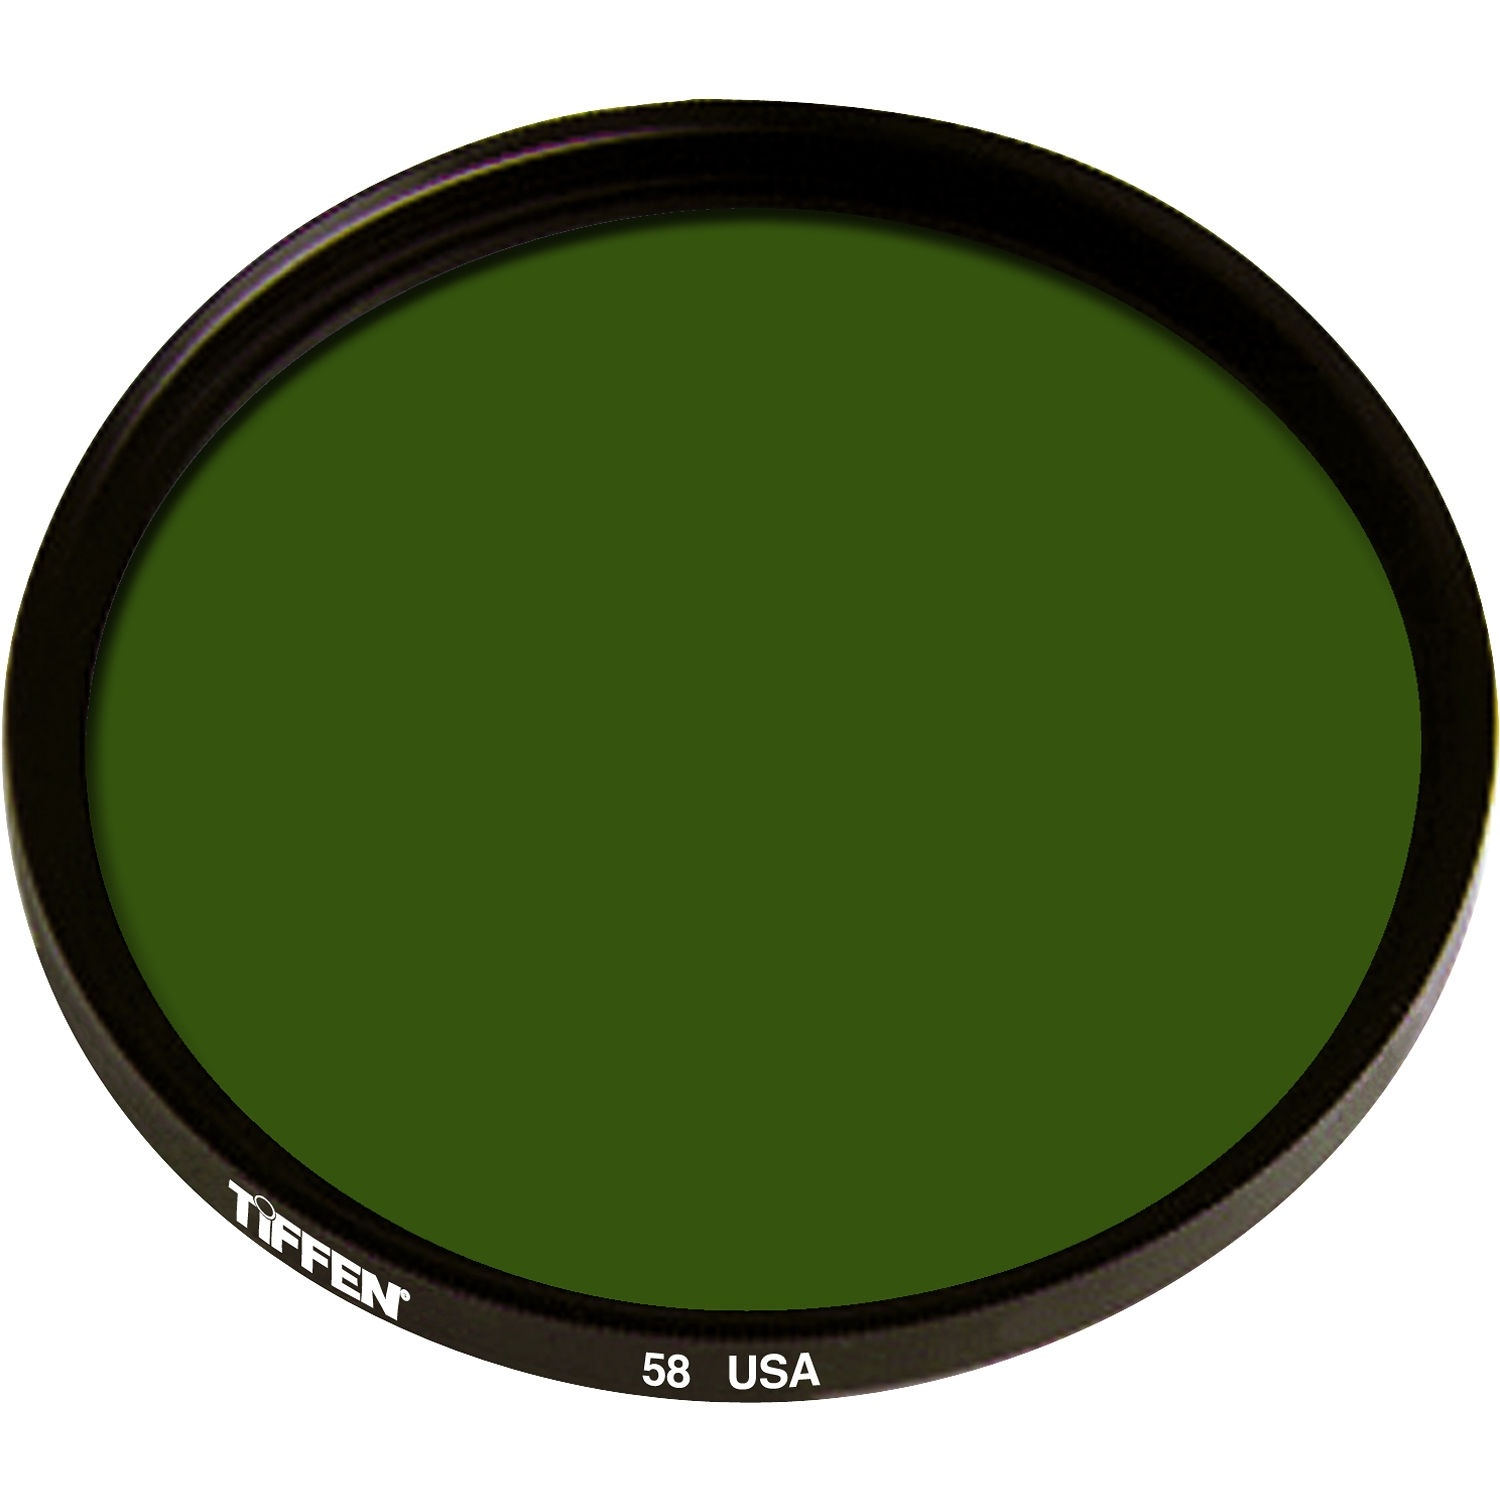 Tiffen 62mm Green 58 Glass Filter for Black & White Film